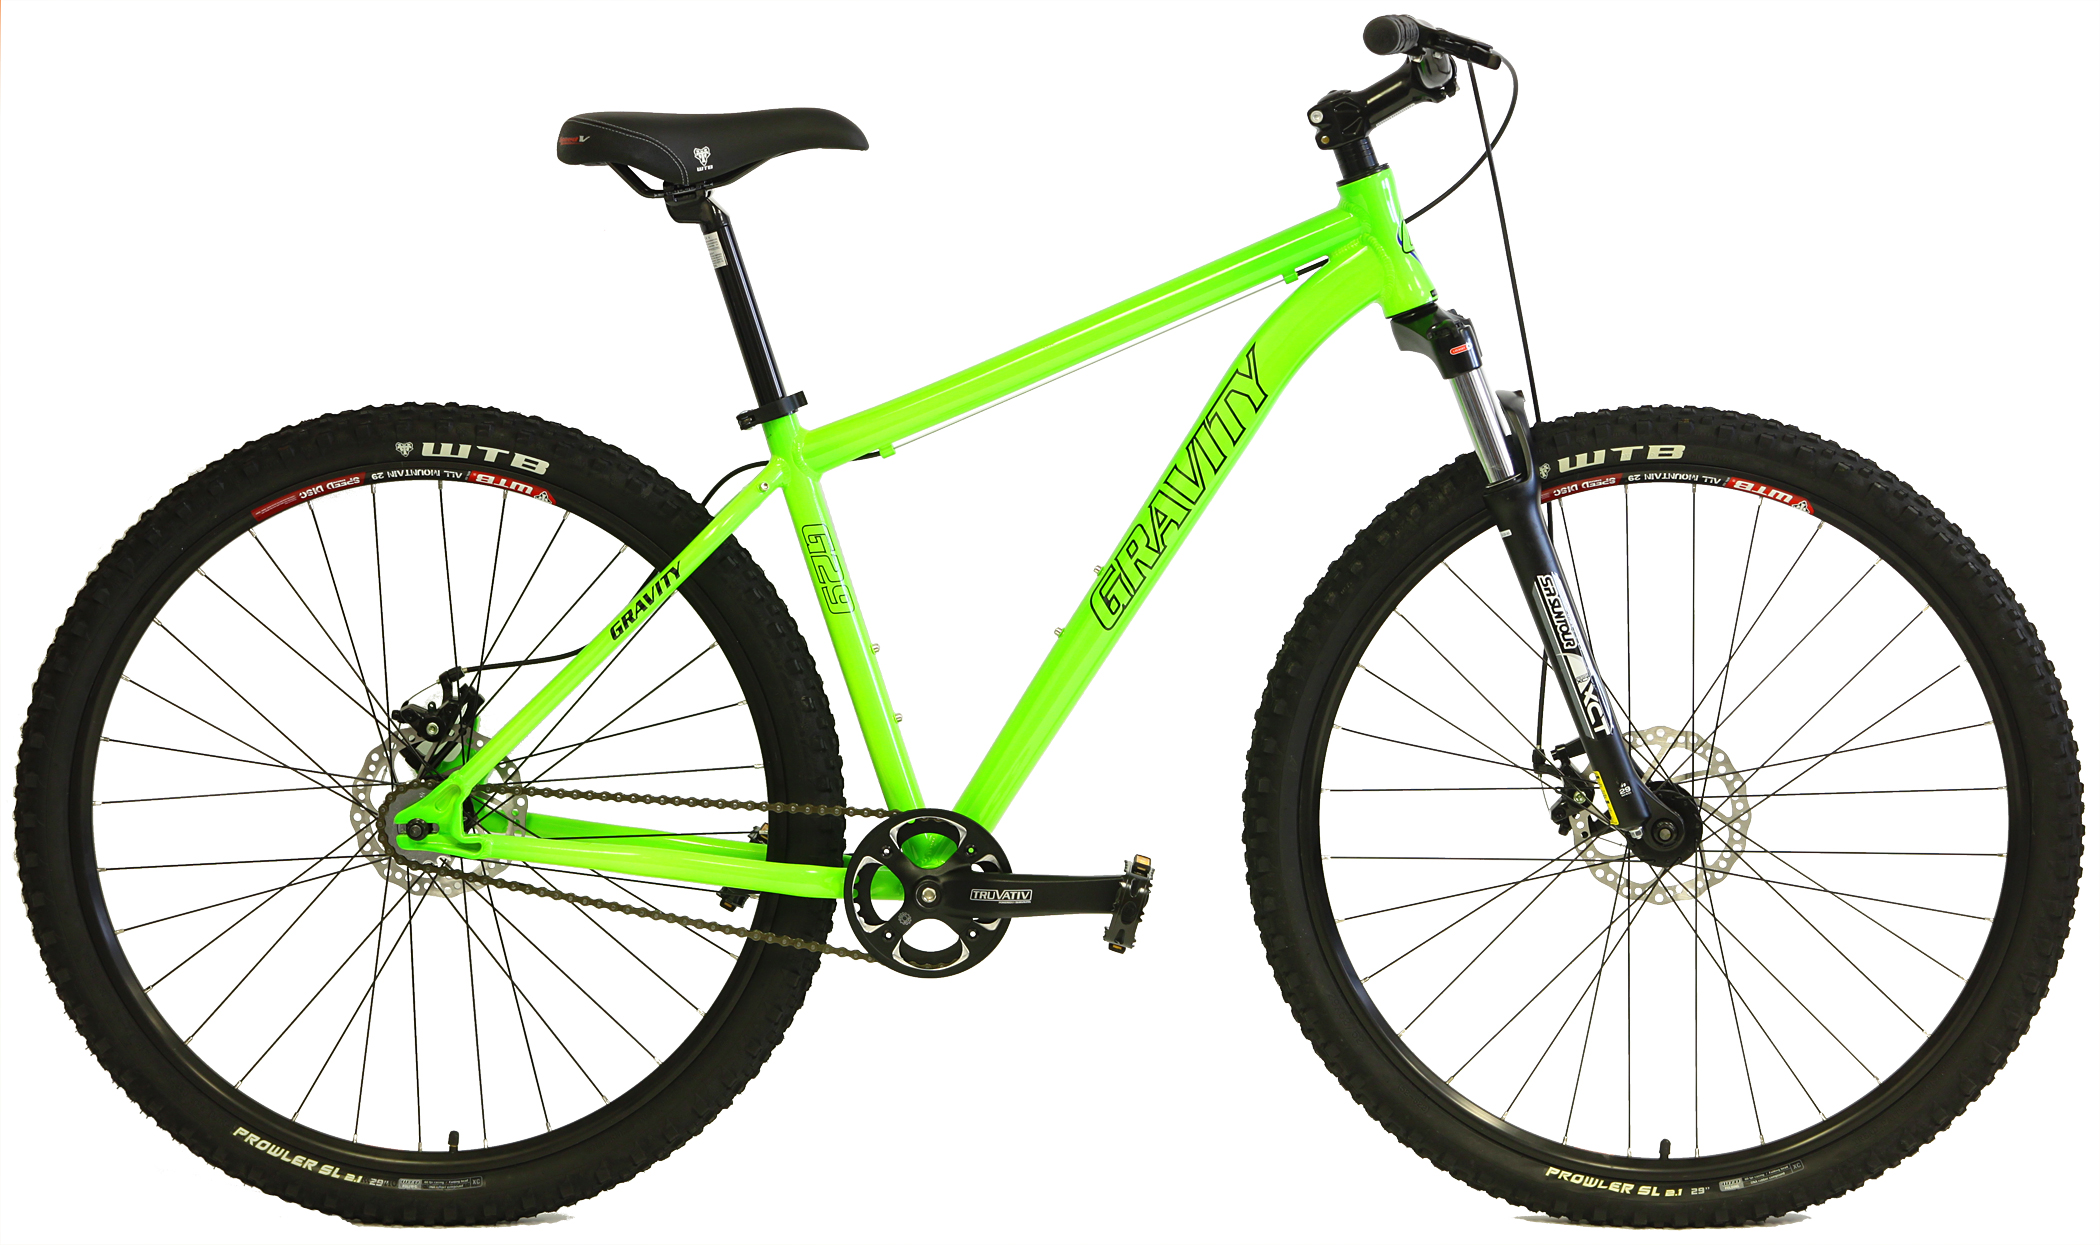 G29 FS - SINGLE SPEED ALUMINUM  ATB w/ DISC BRAKES & SHOCK